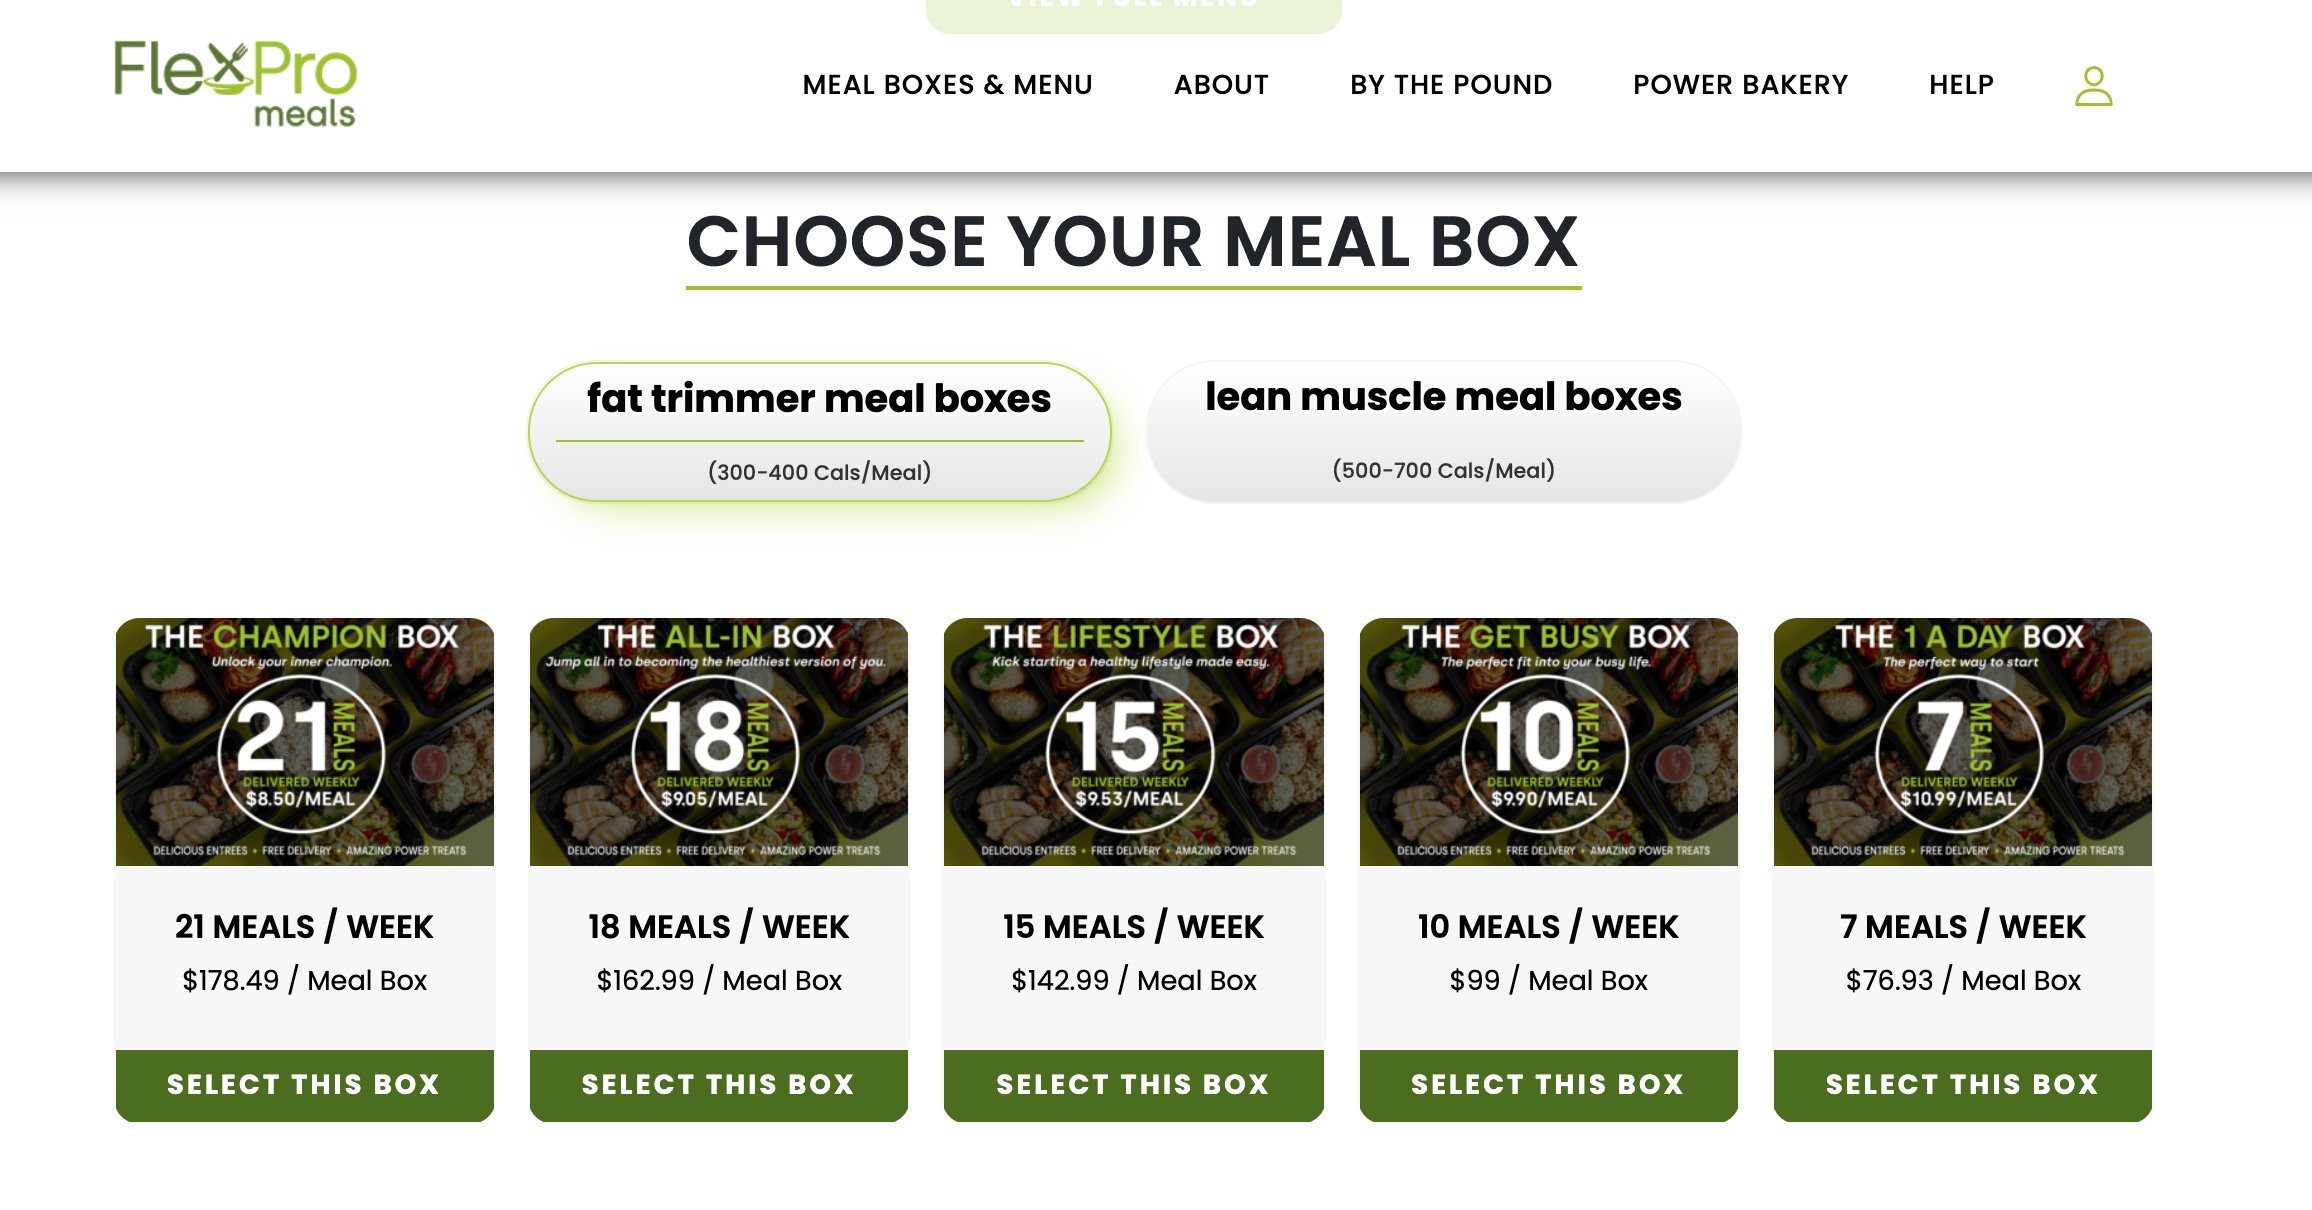 flexpro meals meal box